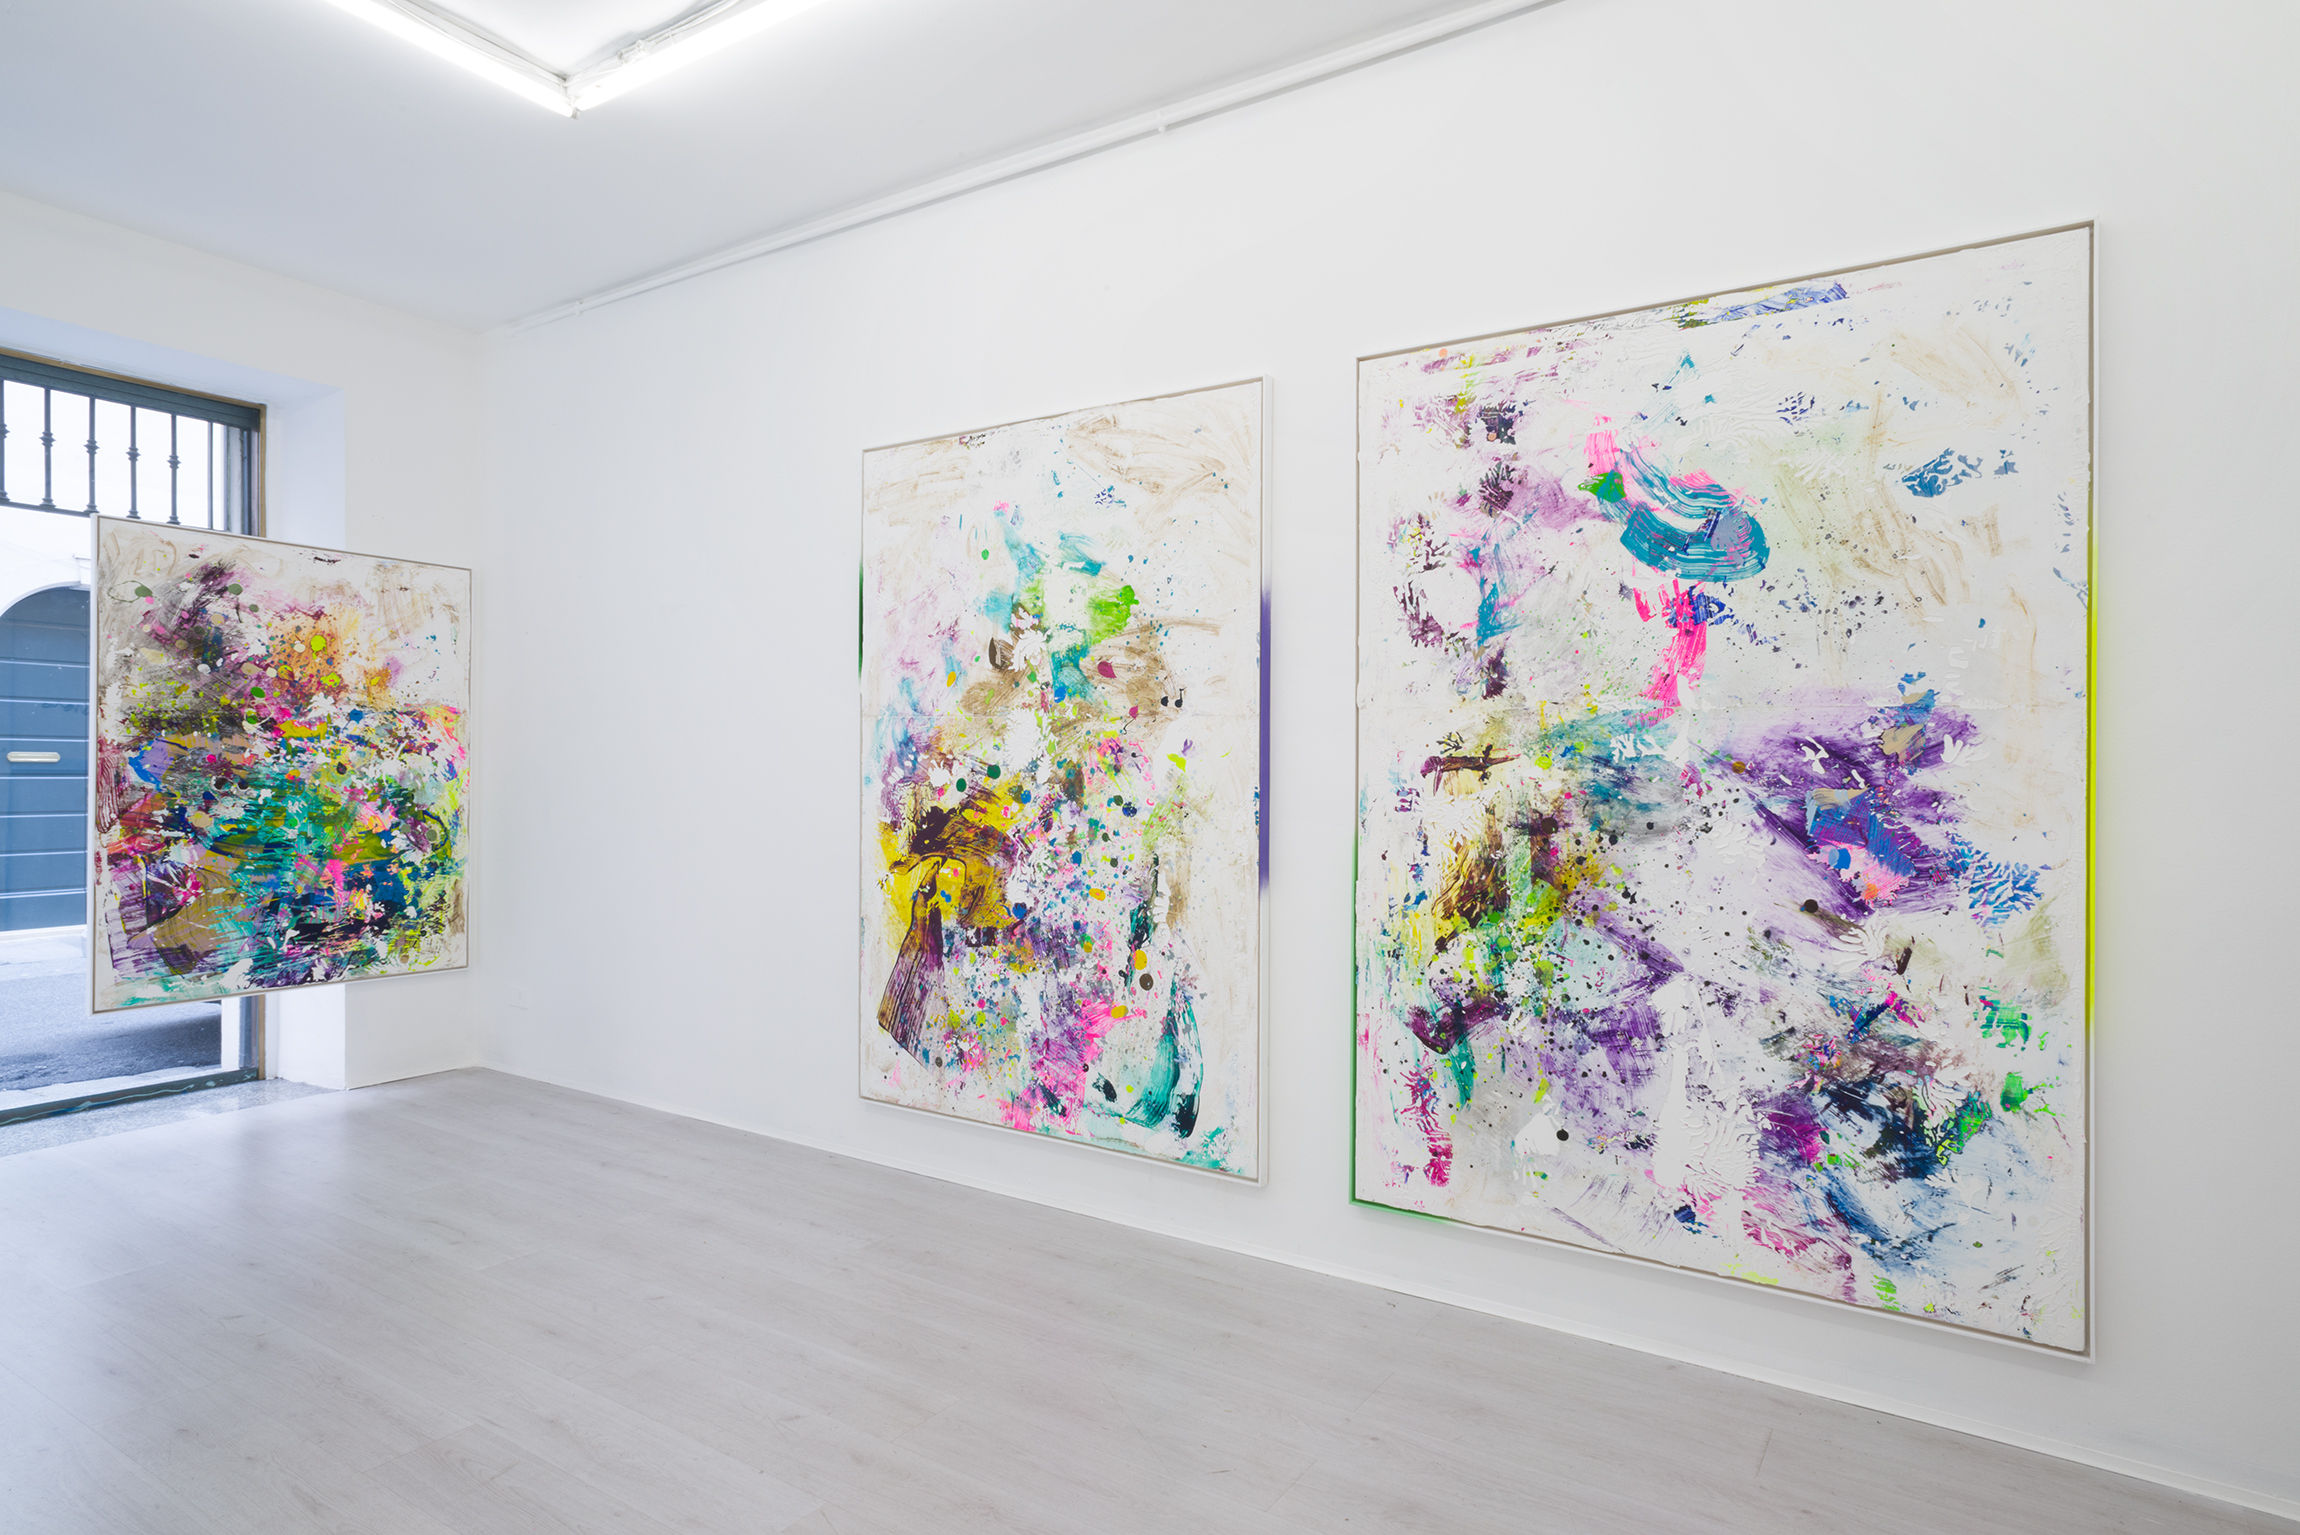 7. Firnt, Tiziano Martini exhibition view at A+B gallery